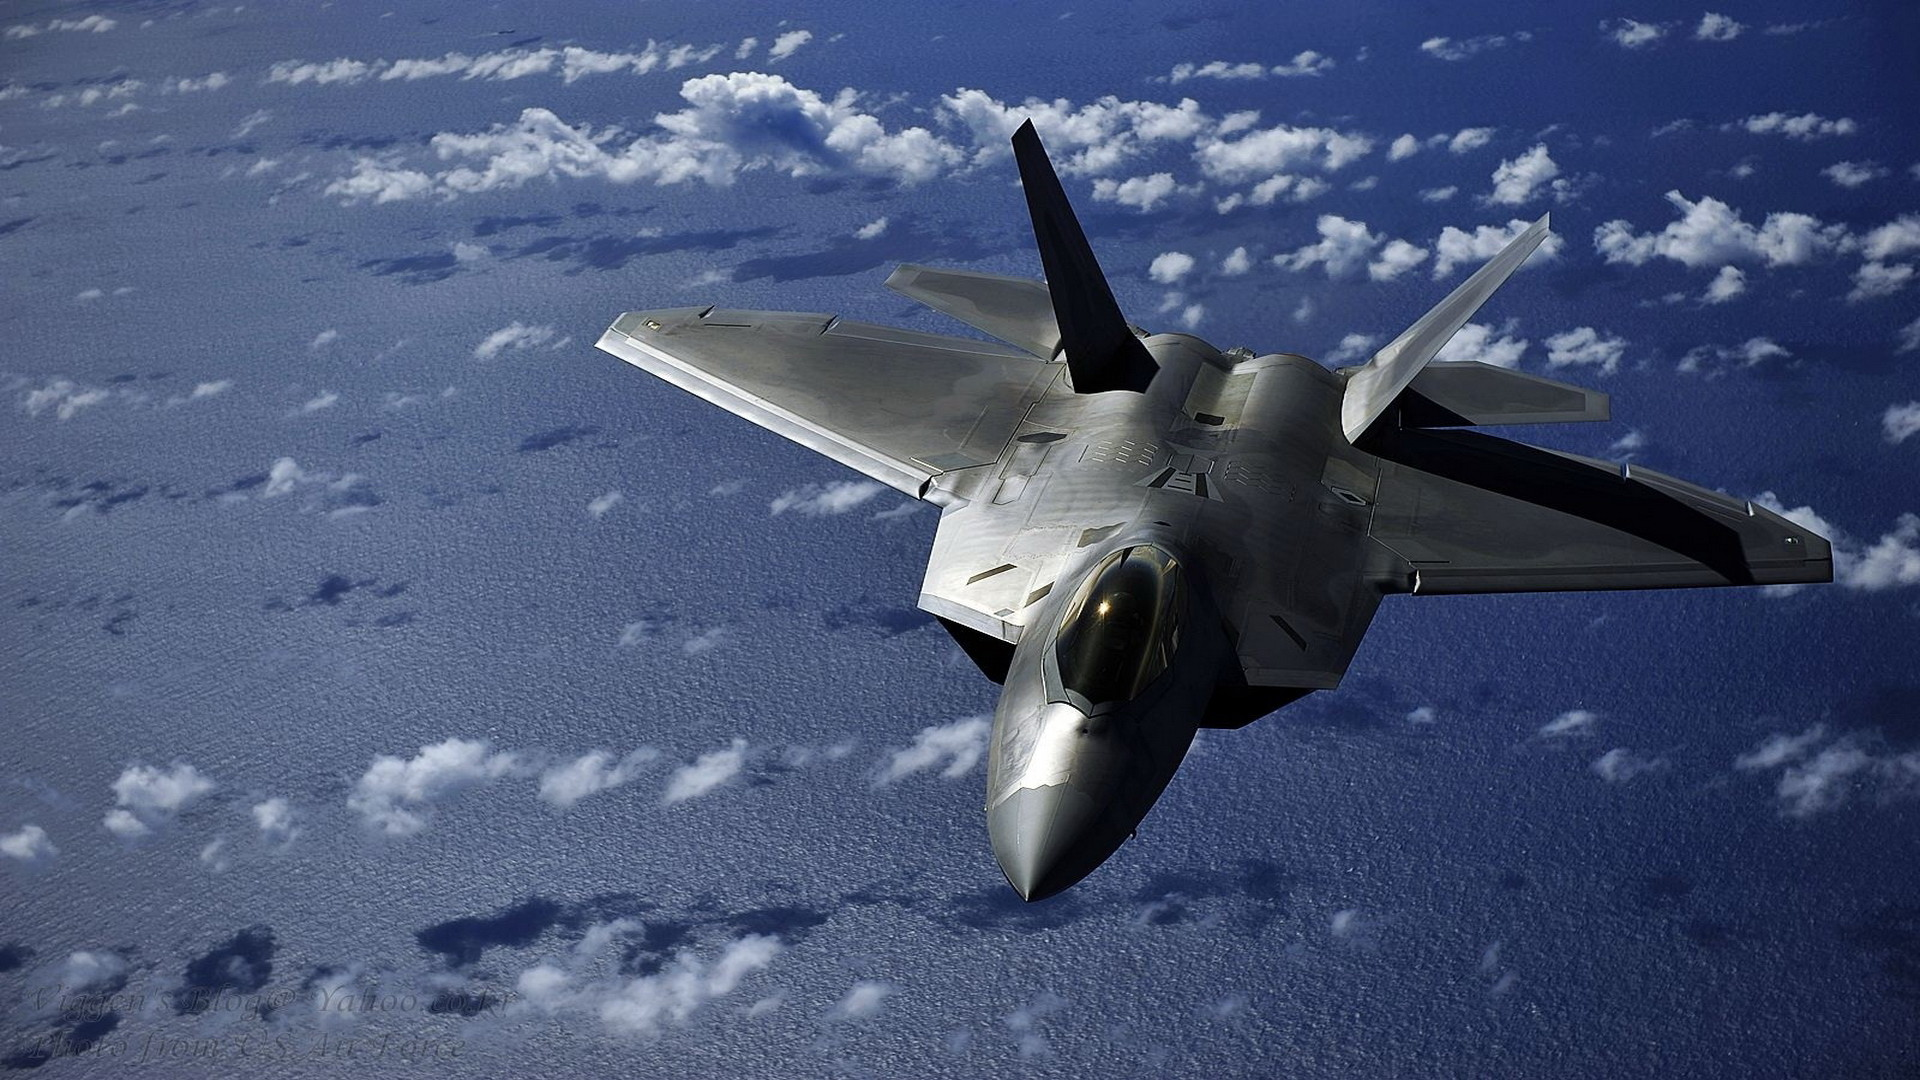 1920x1080 ... F 22 Raptors wallpapers 65 Wallpapers